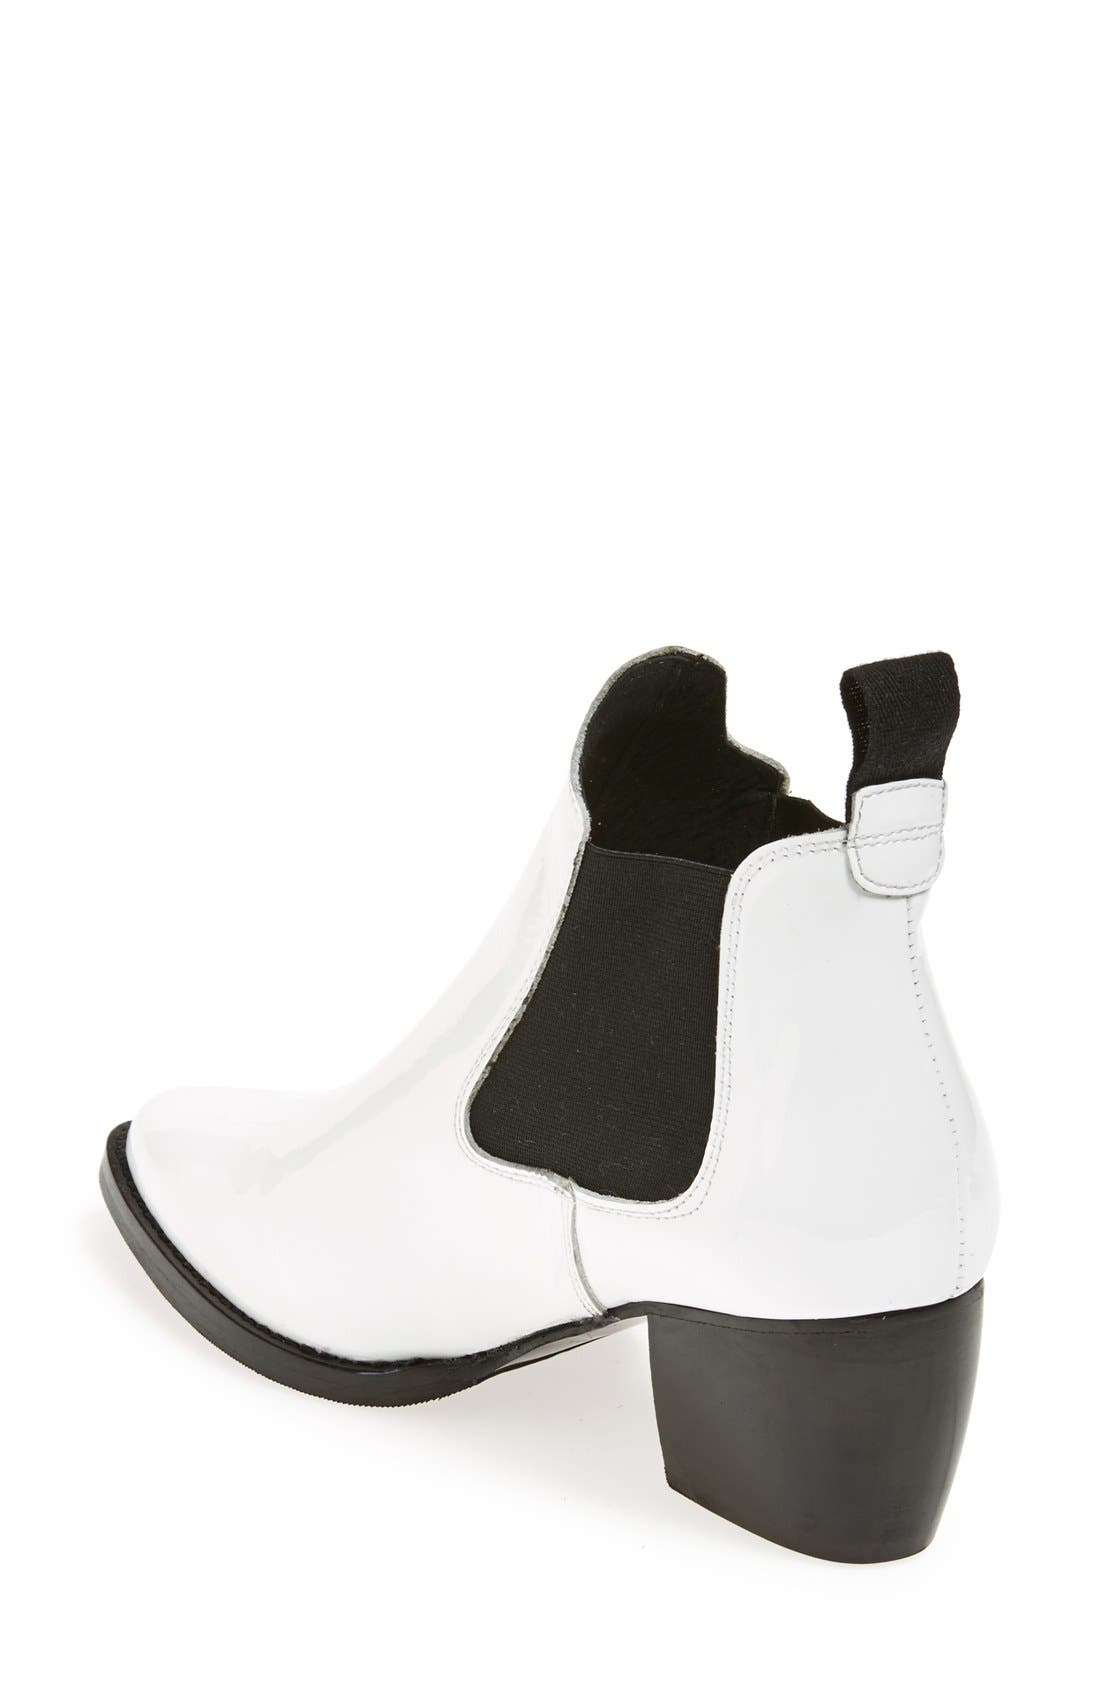 Alternate Image 2  - Topshop 'Margot' Leather Ankle Bootie (Women)